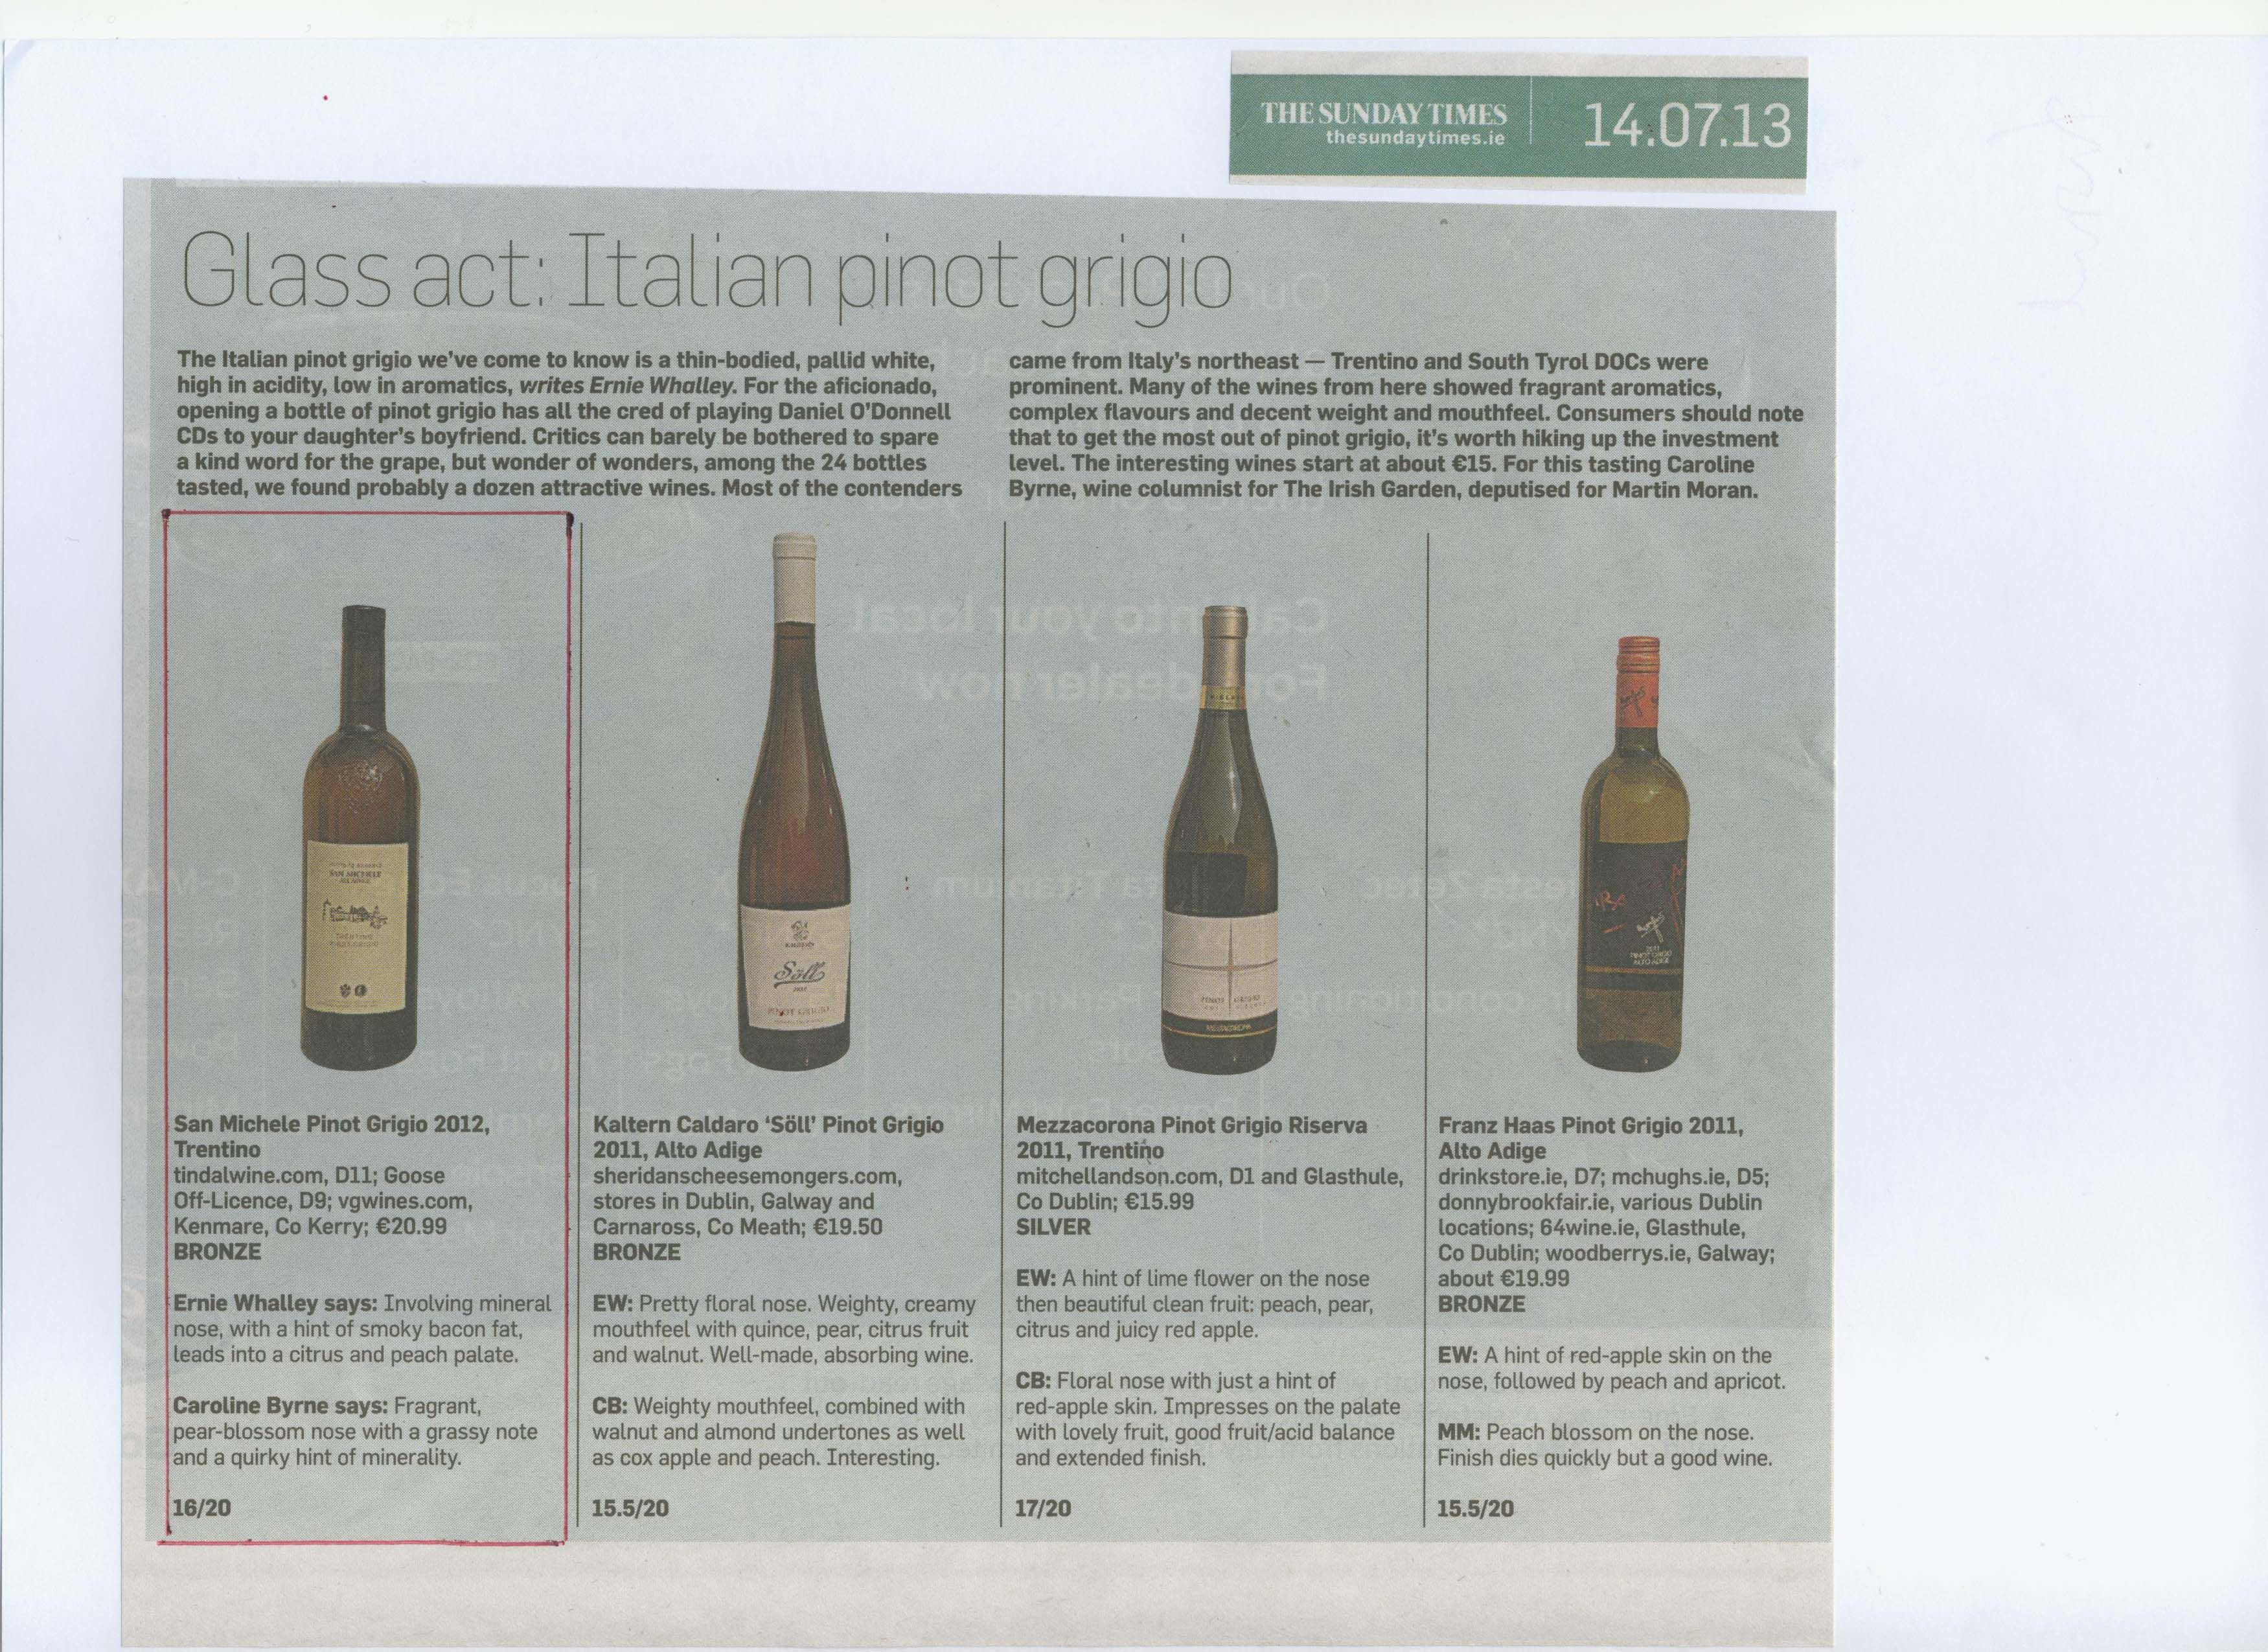 Our San Michele Pinot Grigio gains recognition in the Sunday Times this week. http://www.tindalwine.com/pinot-grigio-san-michele.html